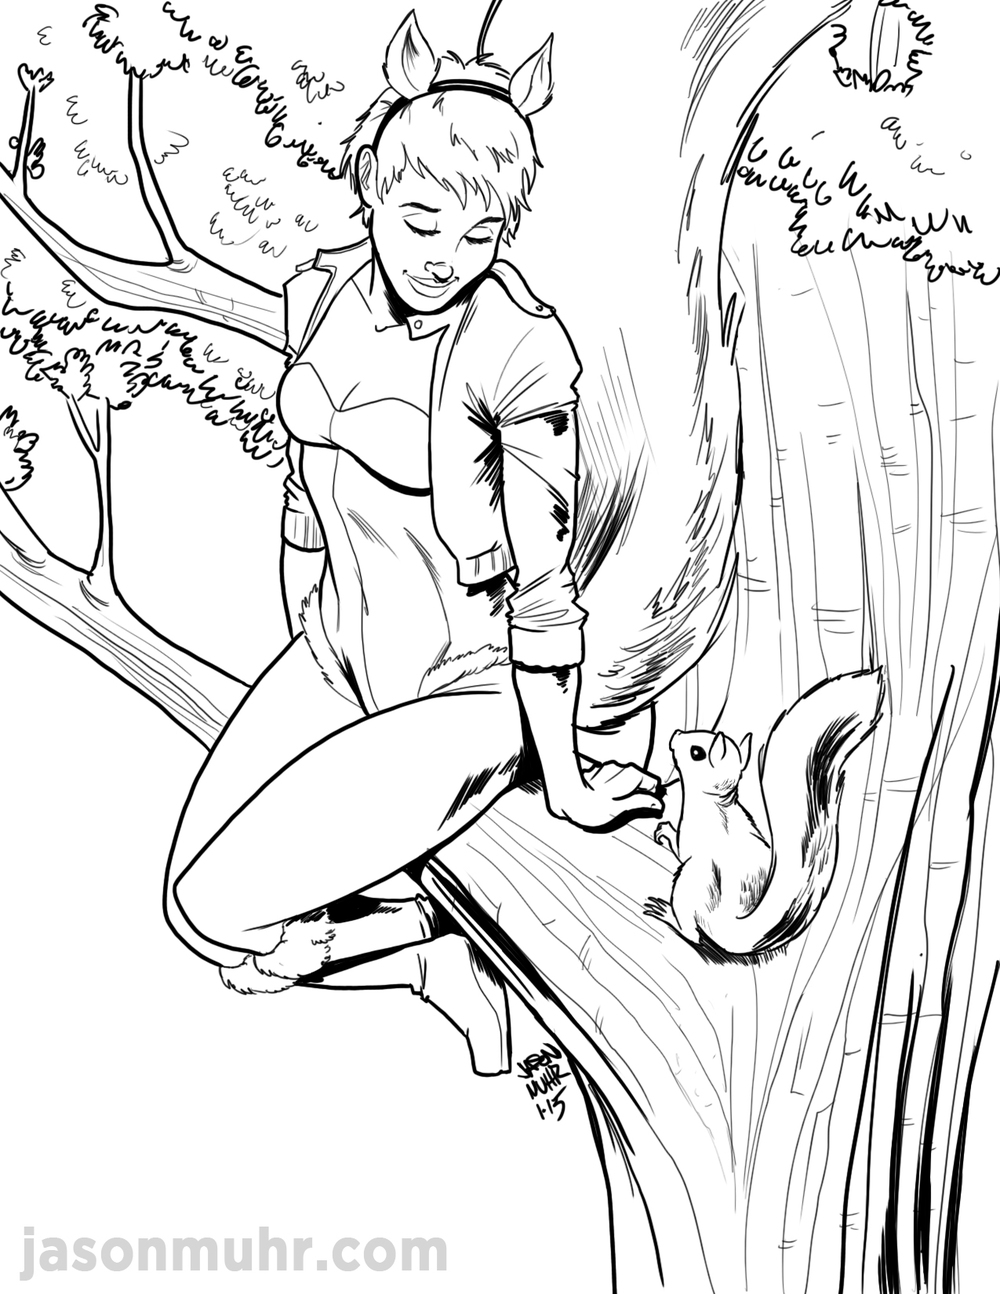 squirrel_girl_jason_muhr.jpg